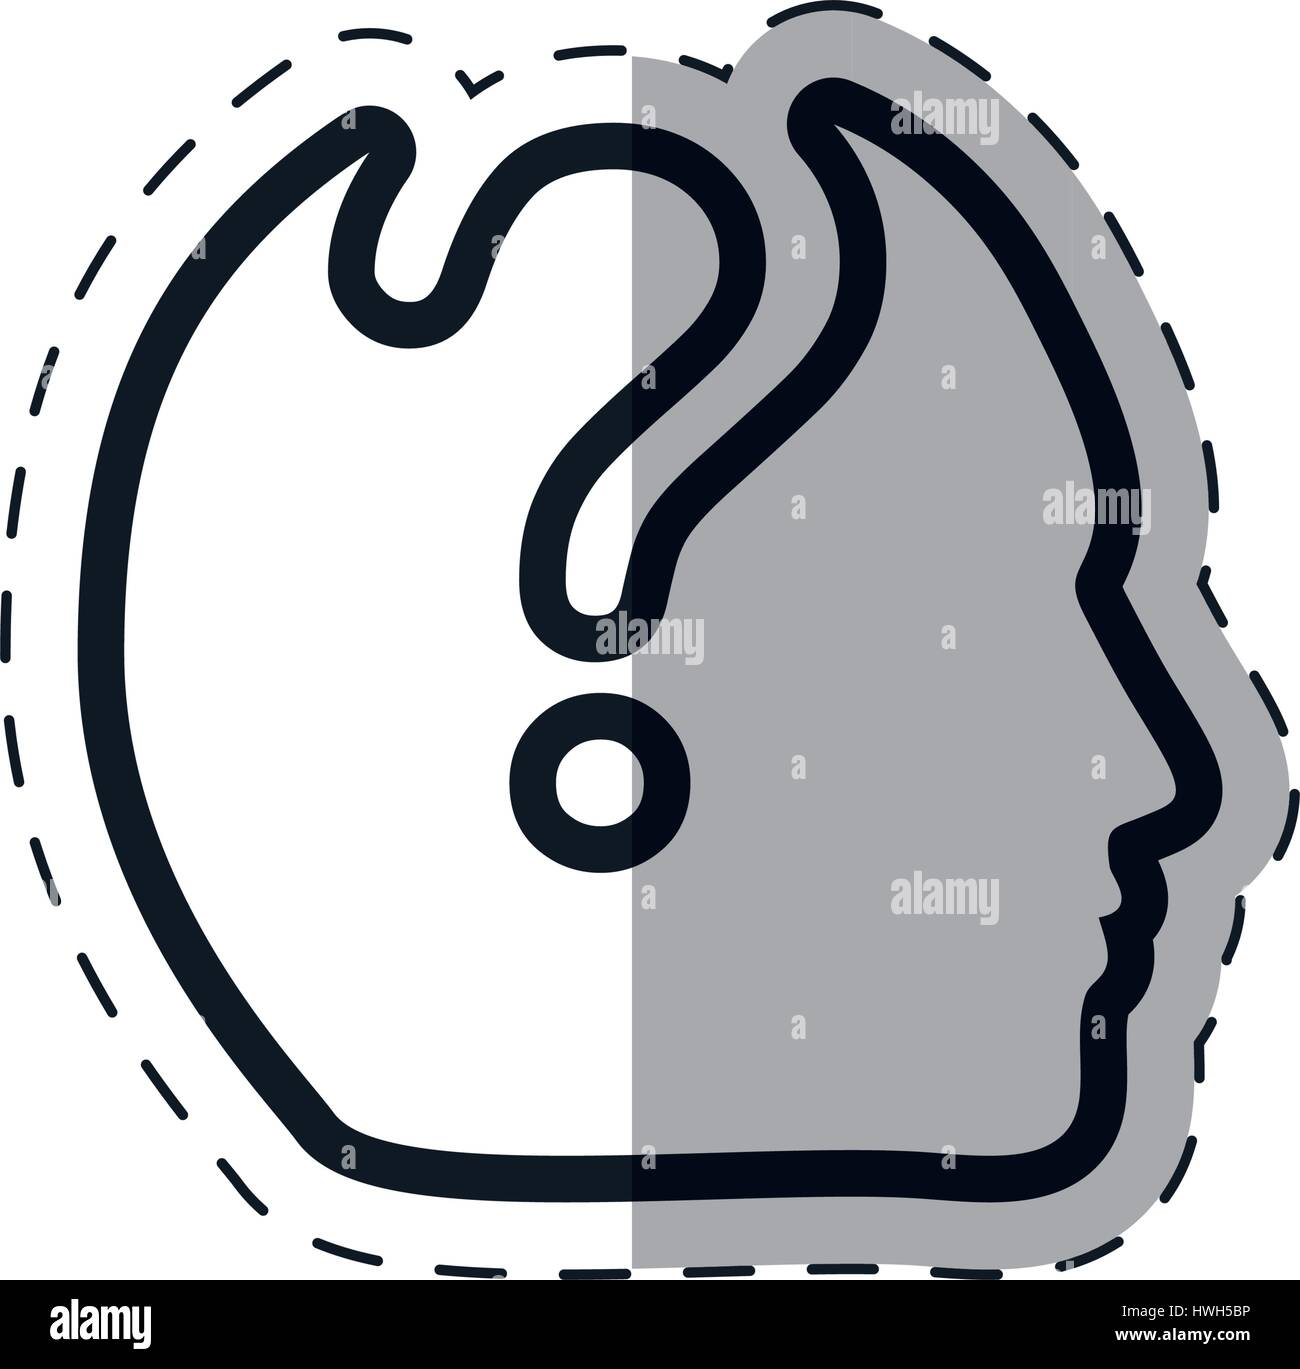 Pics photos clip art cartoon scientist with question mark stock - Silhouette Head Question Mark Outline Stock Image